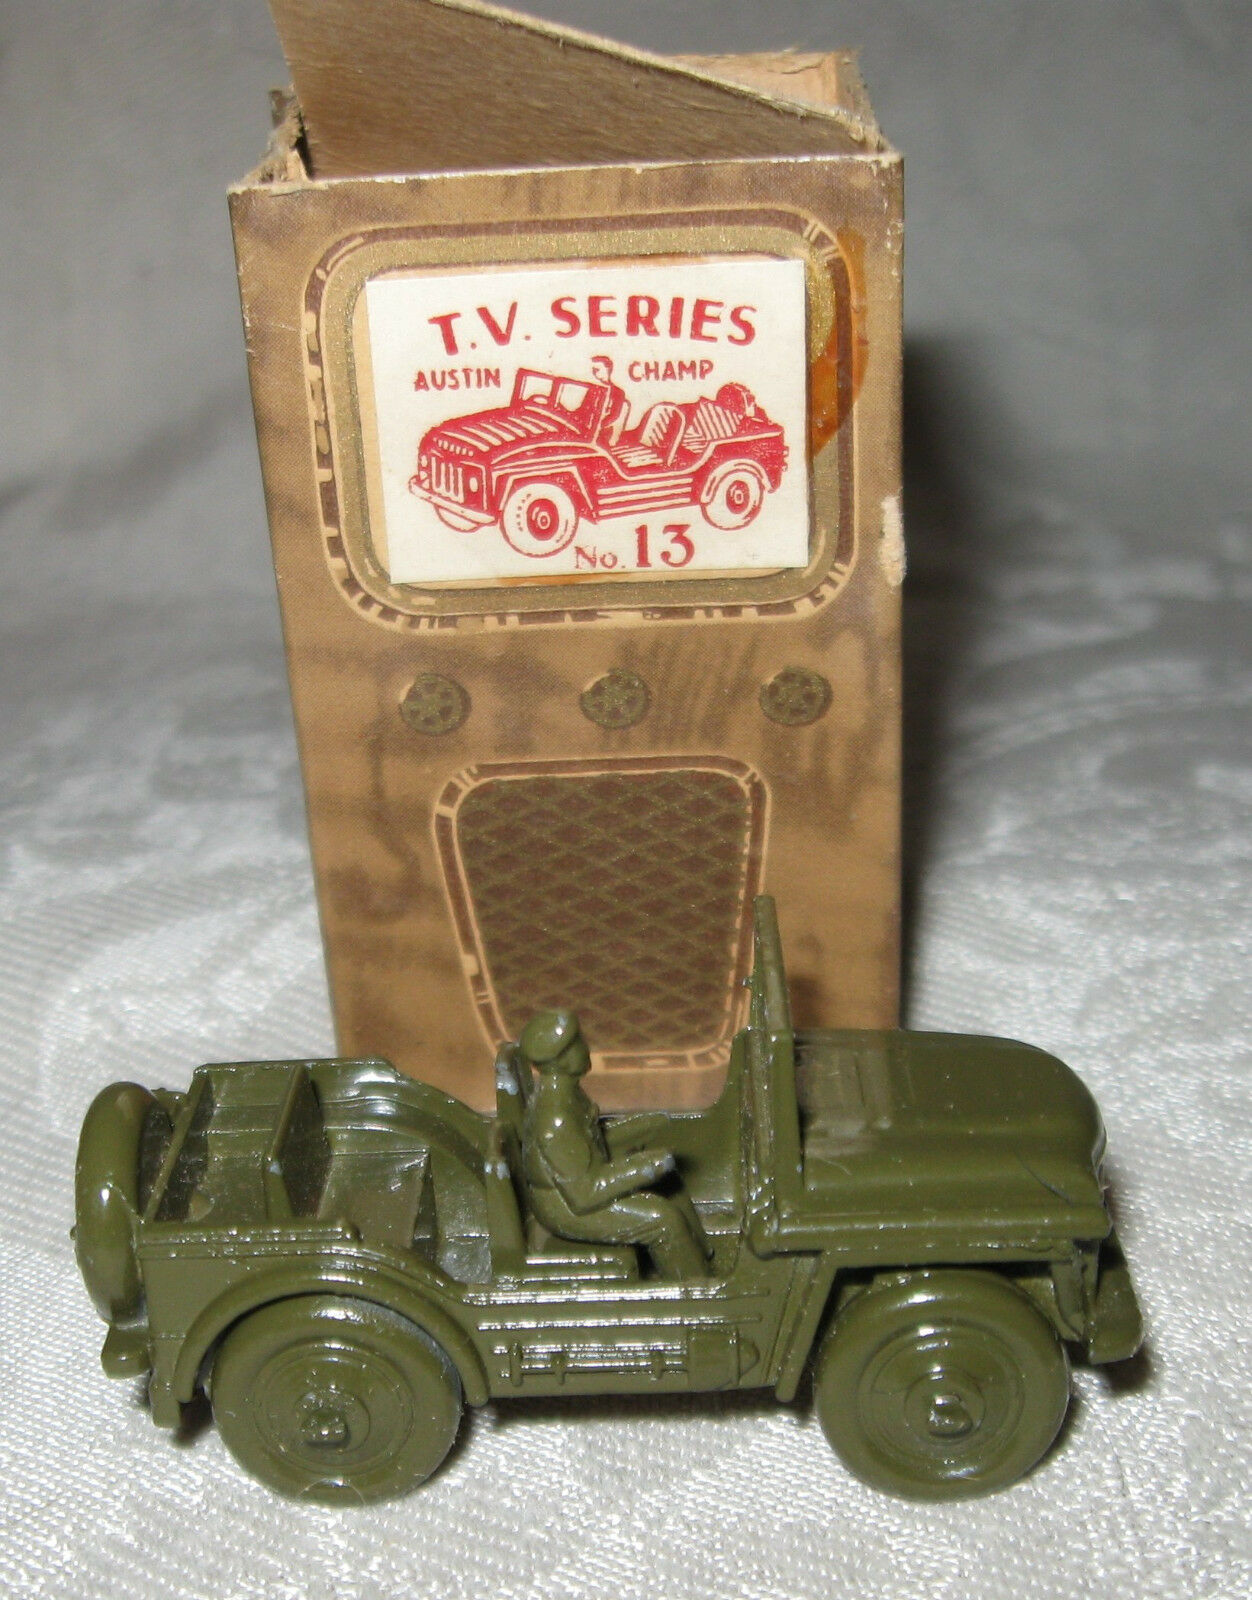 Benbros Qualitoy TV Series Austin Champ Olive Green with Box and Driver